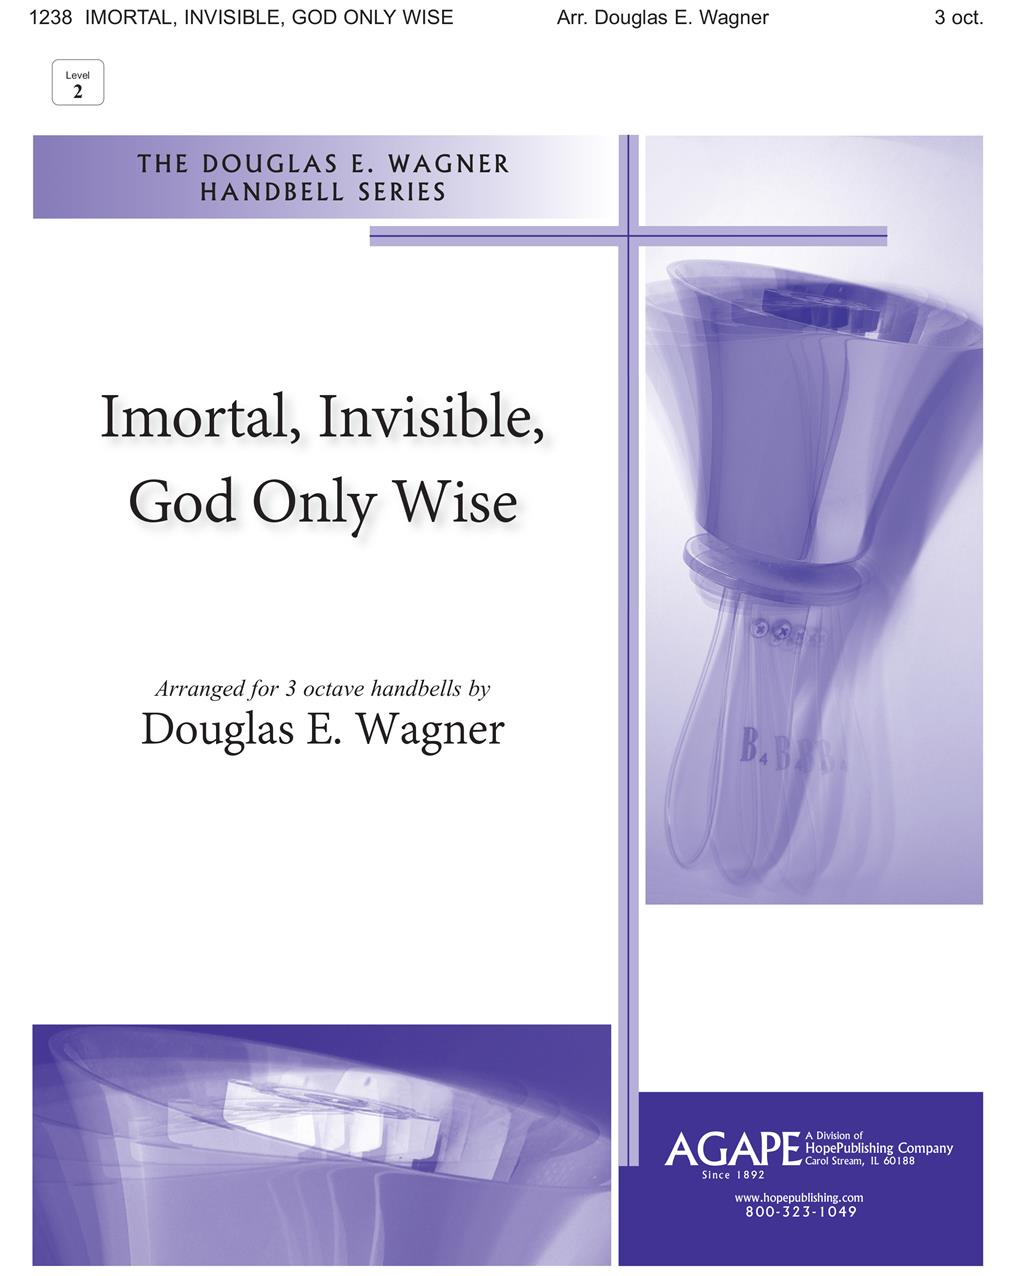 Immortal Invisible God Only Wise - 3 Oct. Cover Image